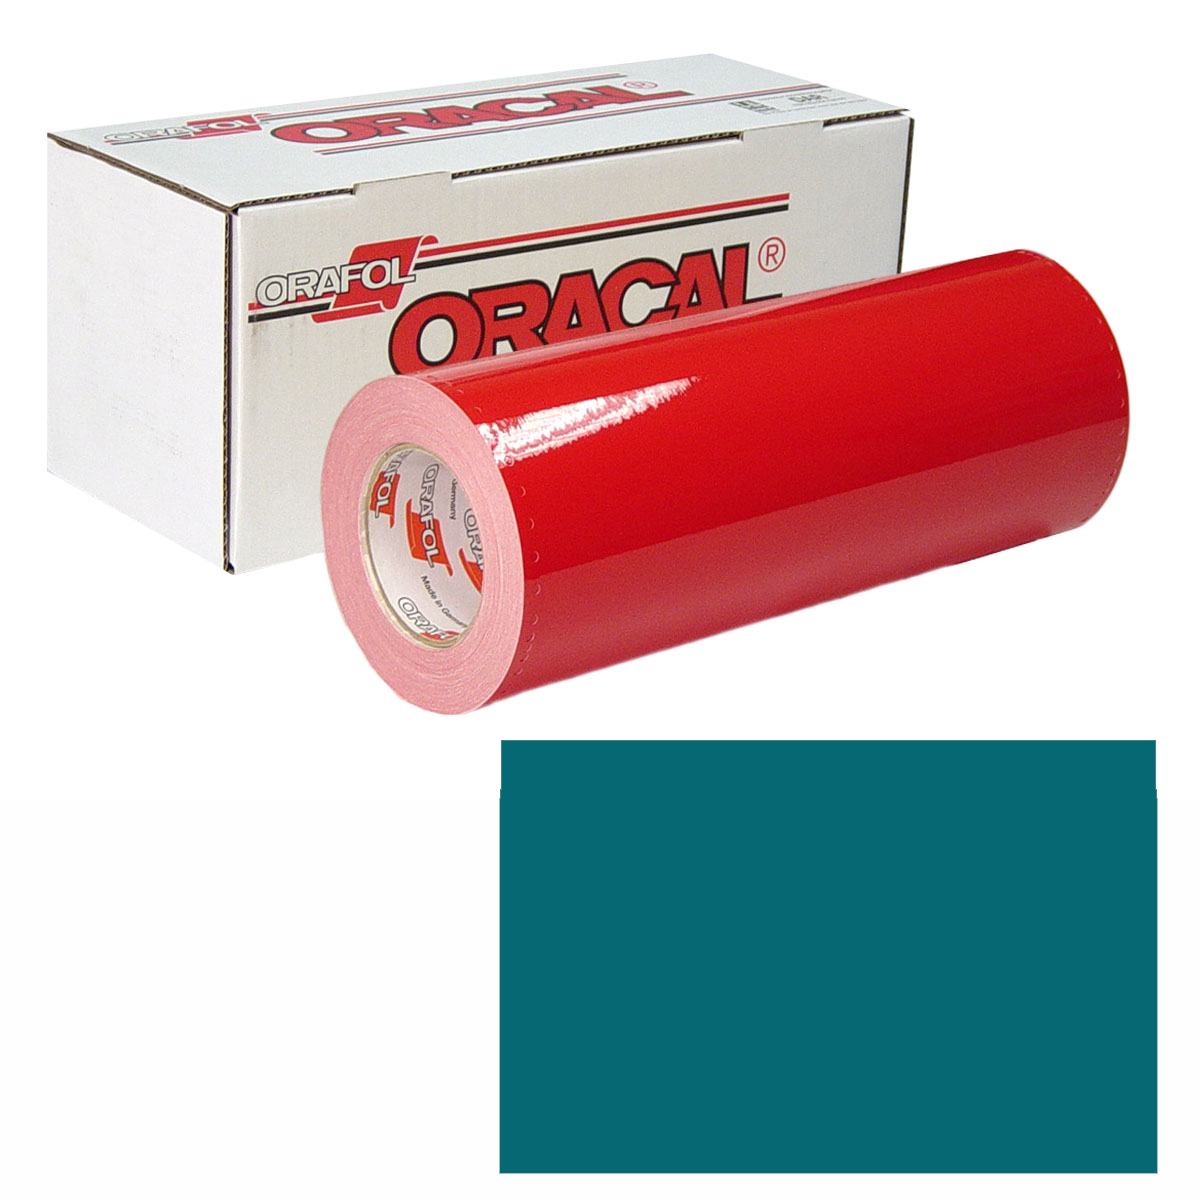 ORACAL 951M 15in X 50yd 637 Teal Metallic